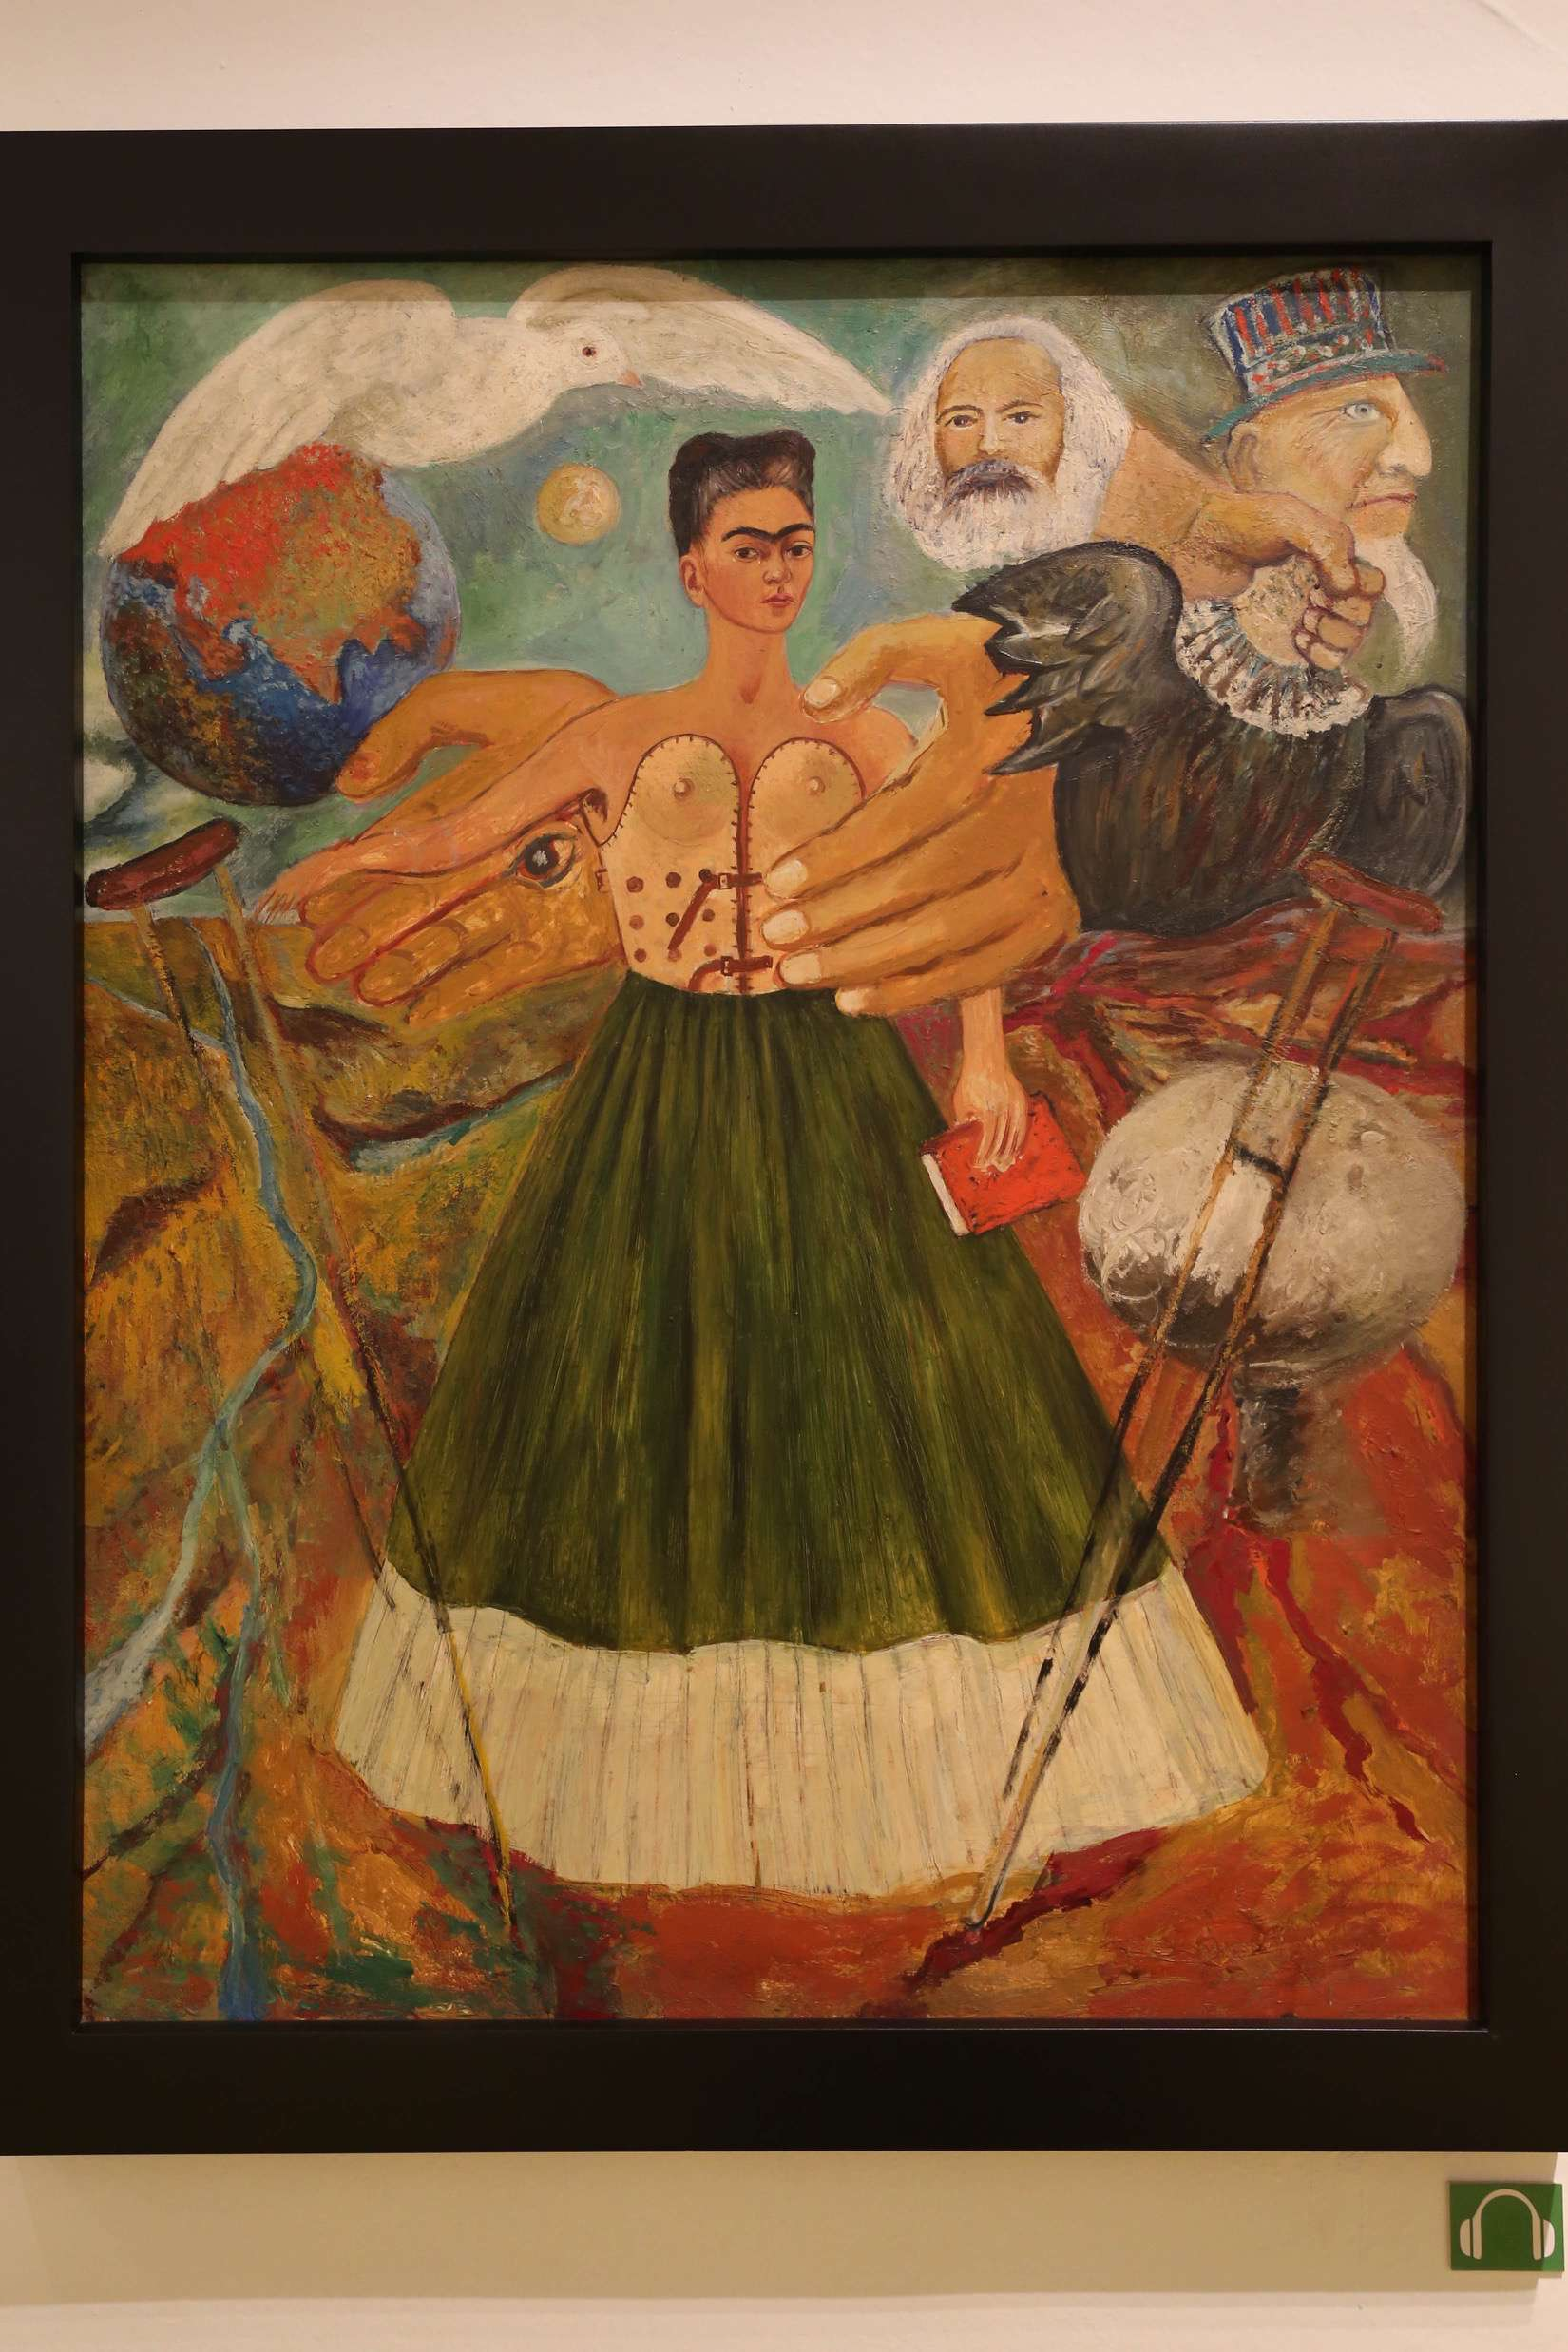 Frida Kahlo endured great pain, but that may have driven her to be such a great artist. This self portrait shows the complex and painful nature of her life.